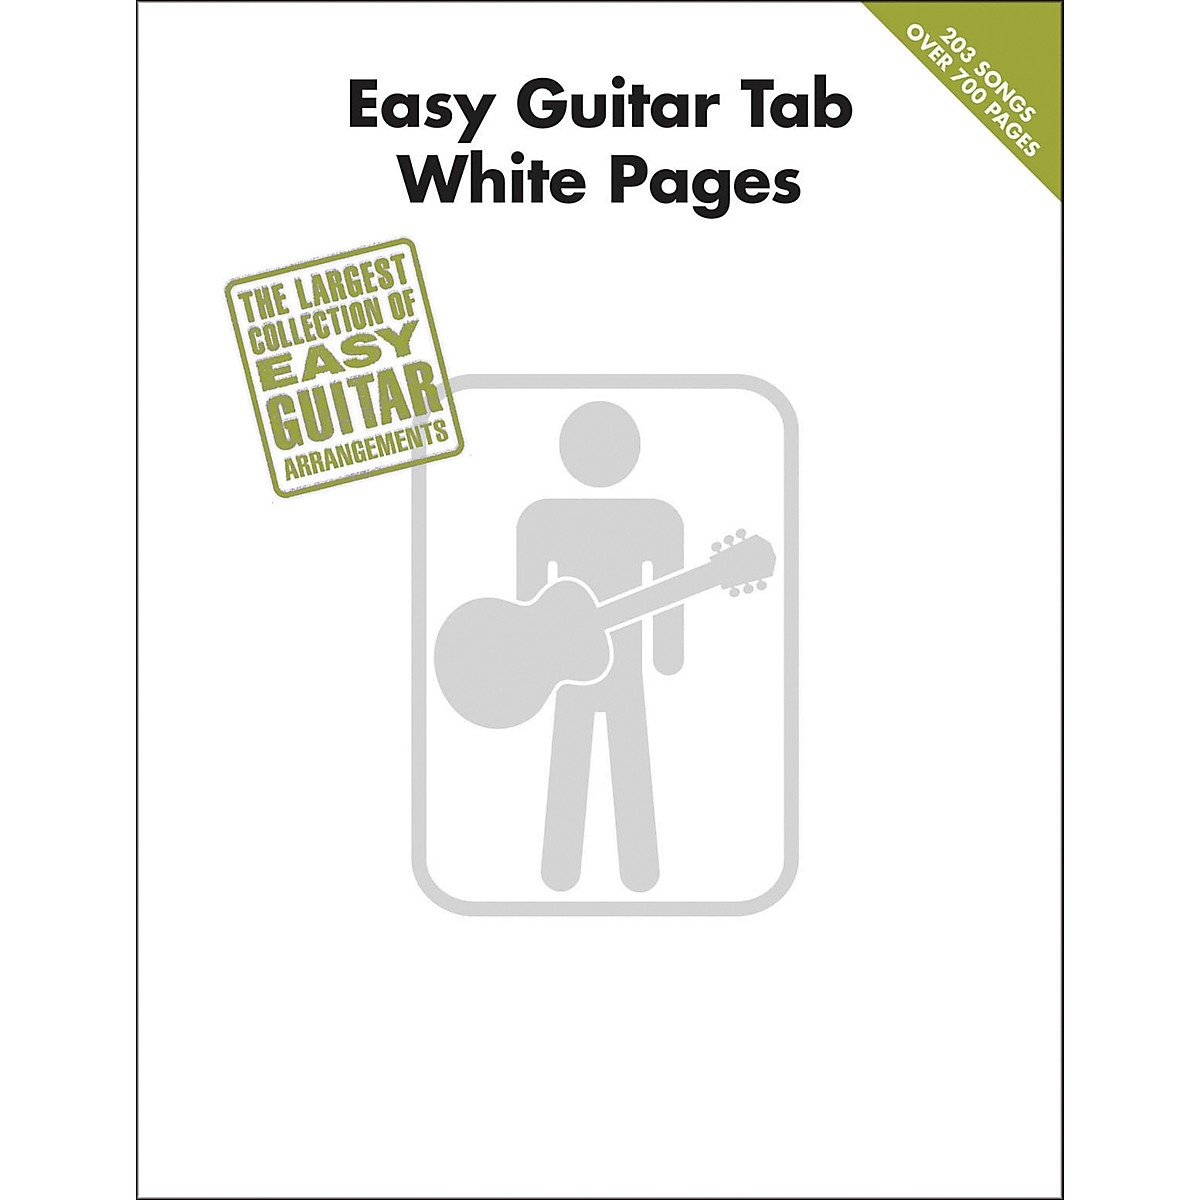 Hal Leonard Easy Guitar Tab White Pages Songbook